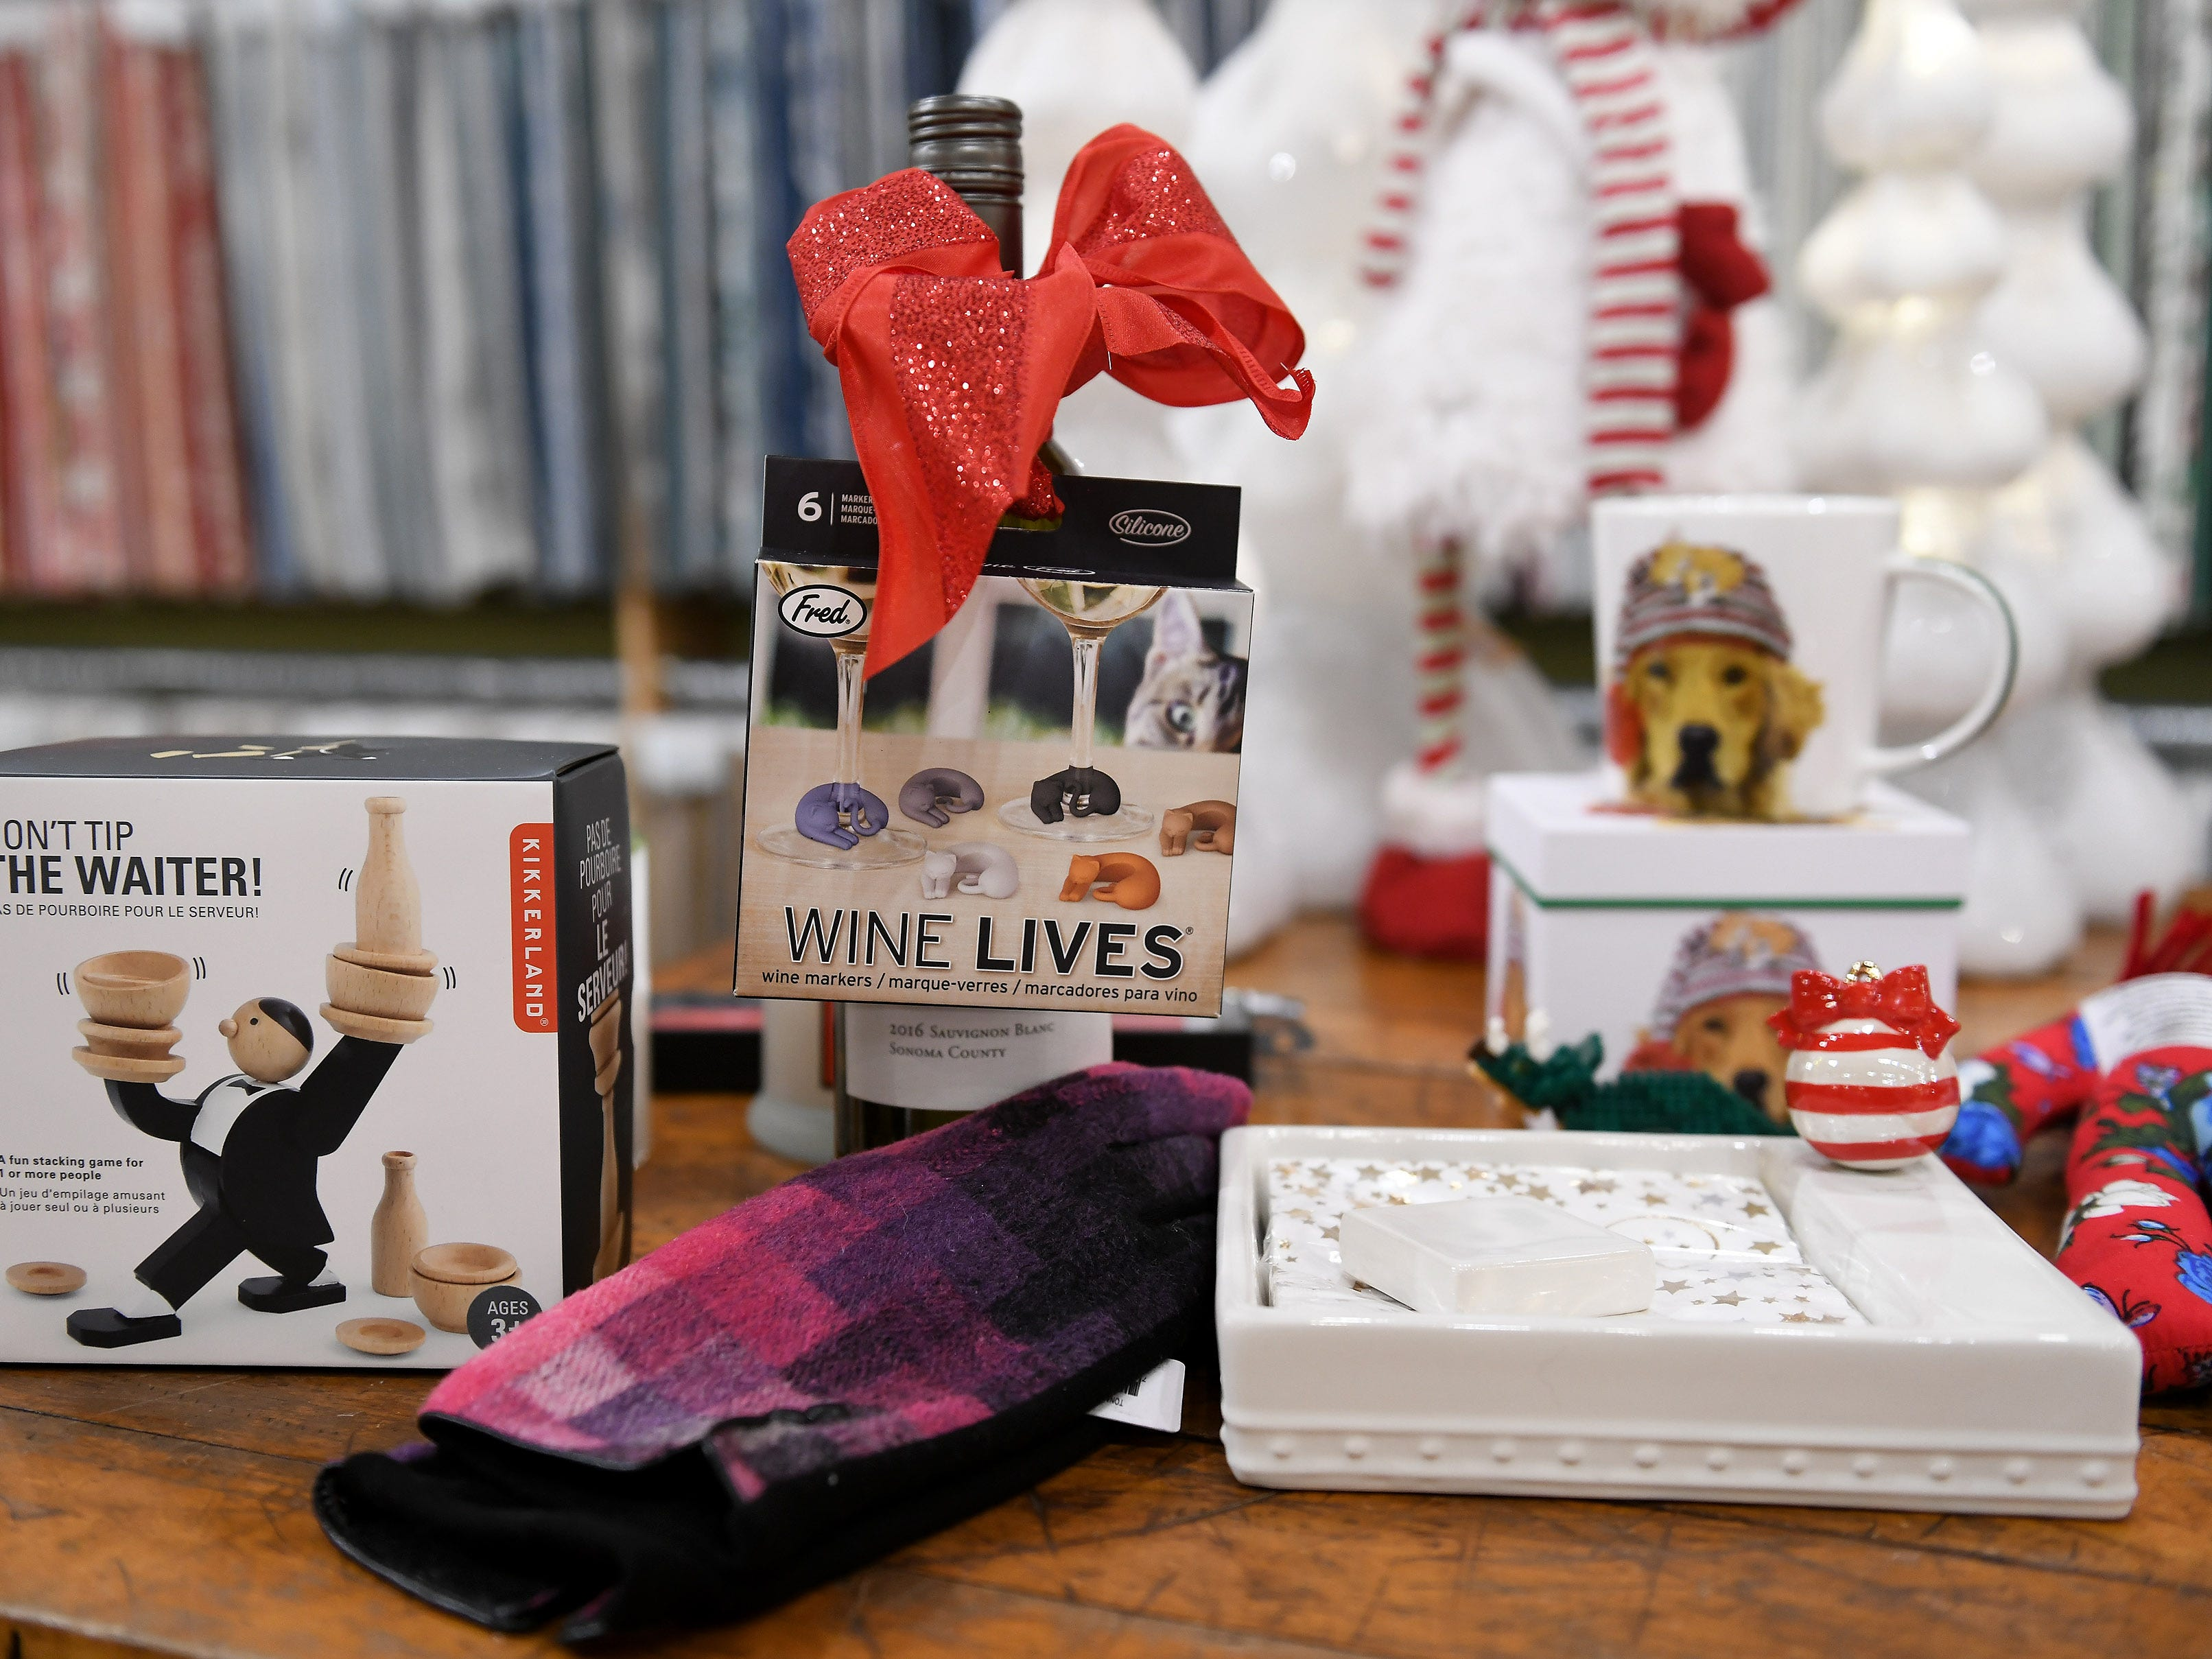 Small and fun gift ideas such as wine favors, games and gloves at Leon & Lulu.